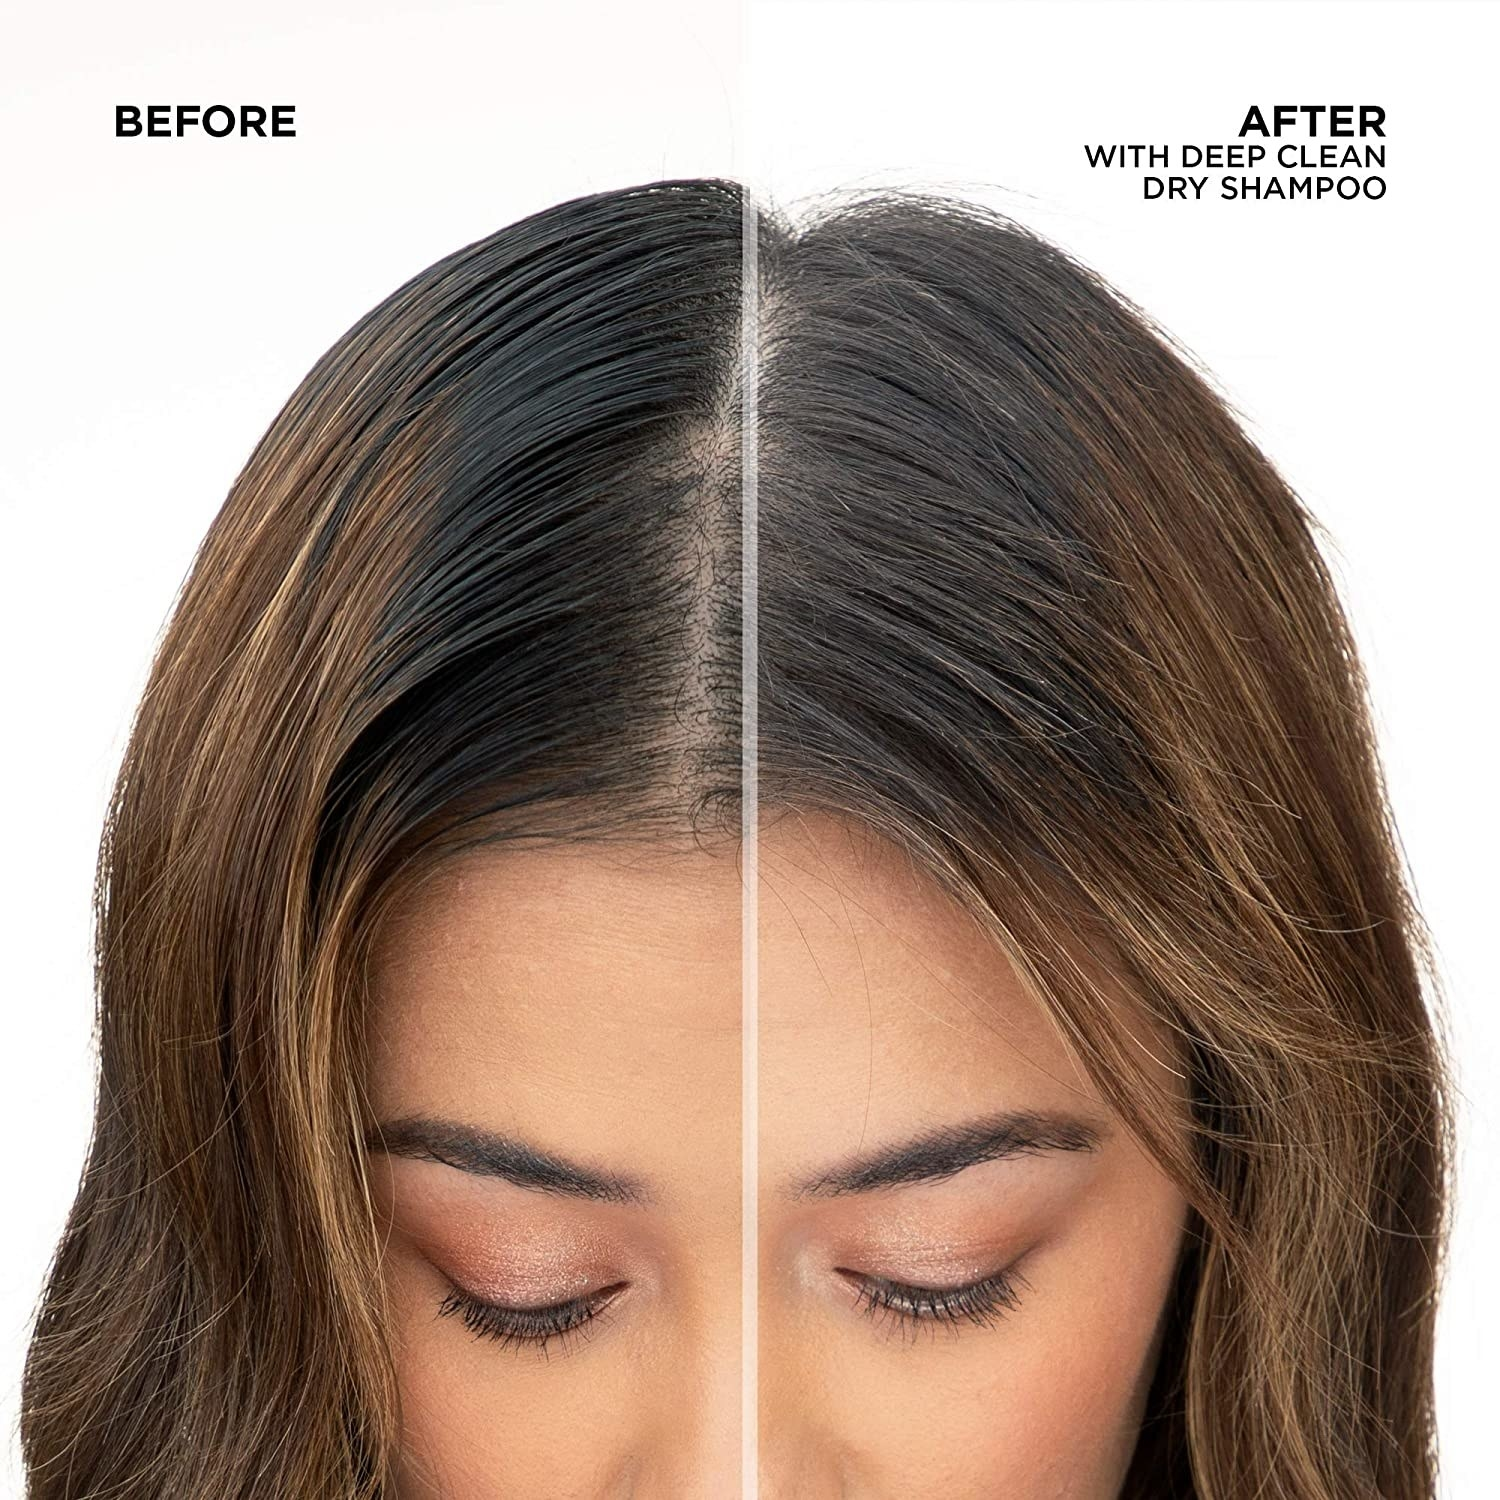 before and after photo of model with grease hair on the left and visibly less greasy hair on the right